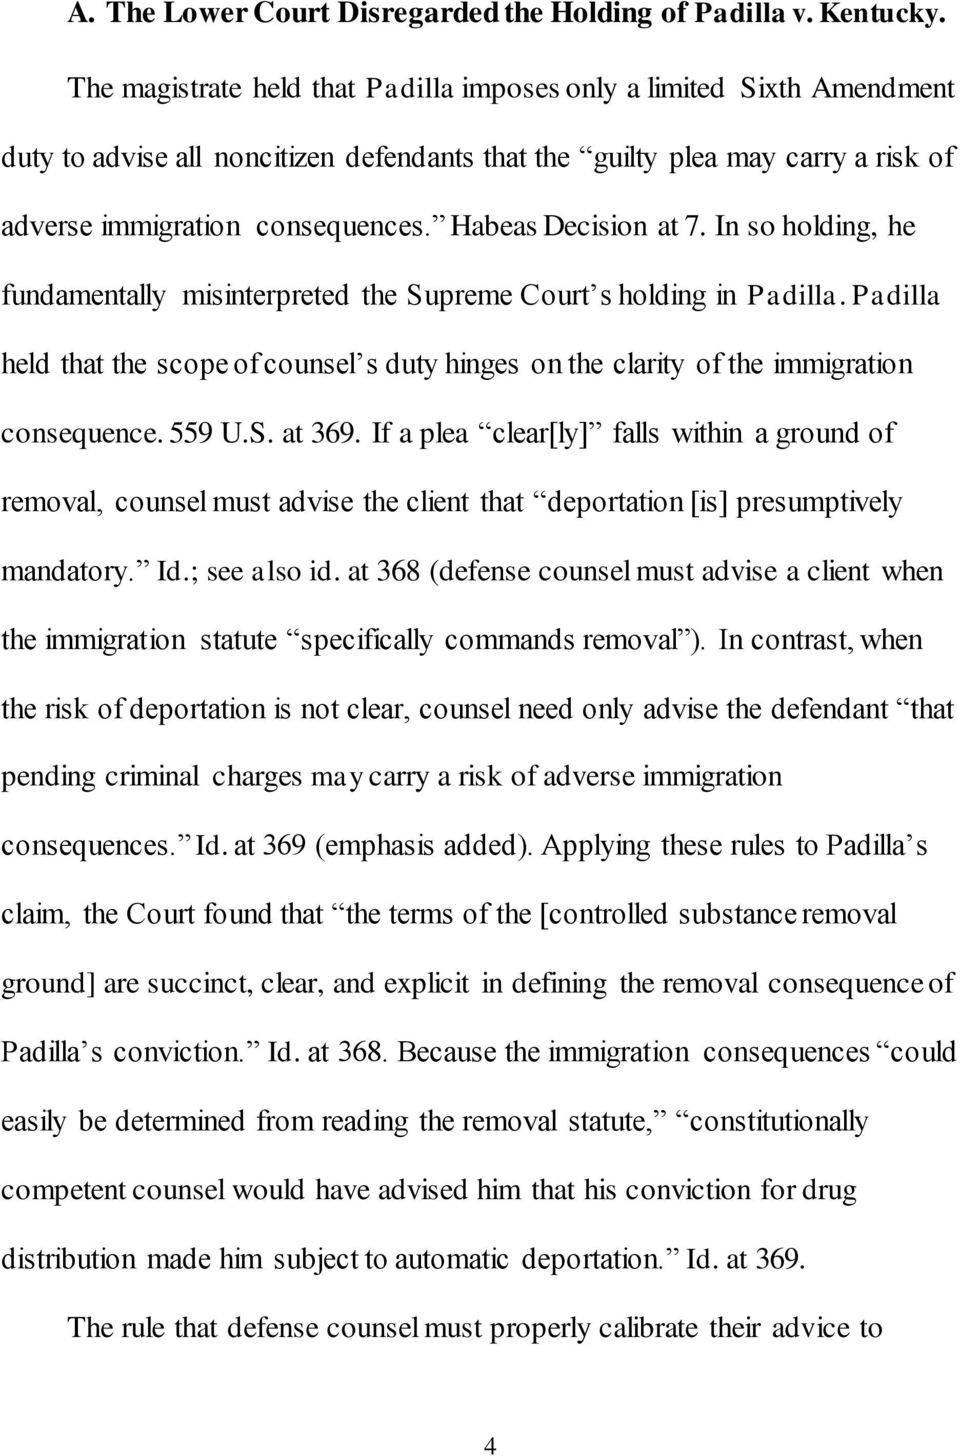 Habeas Decision at 7. In so holding, he fundamentally misinterpreted the Supreme Court s holding in Padilla.